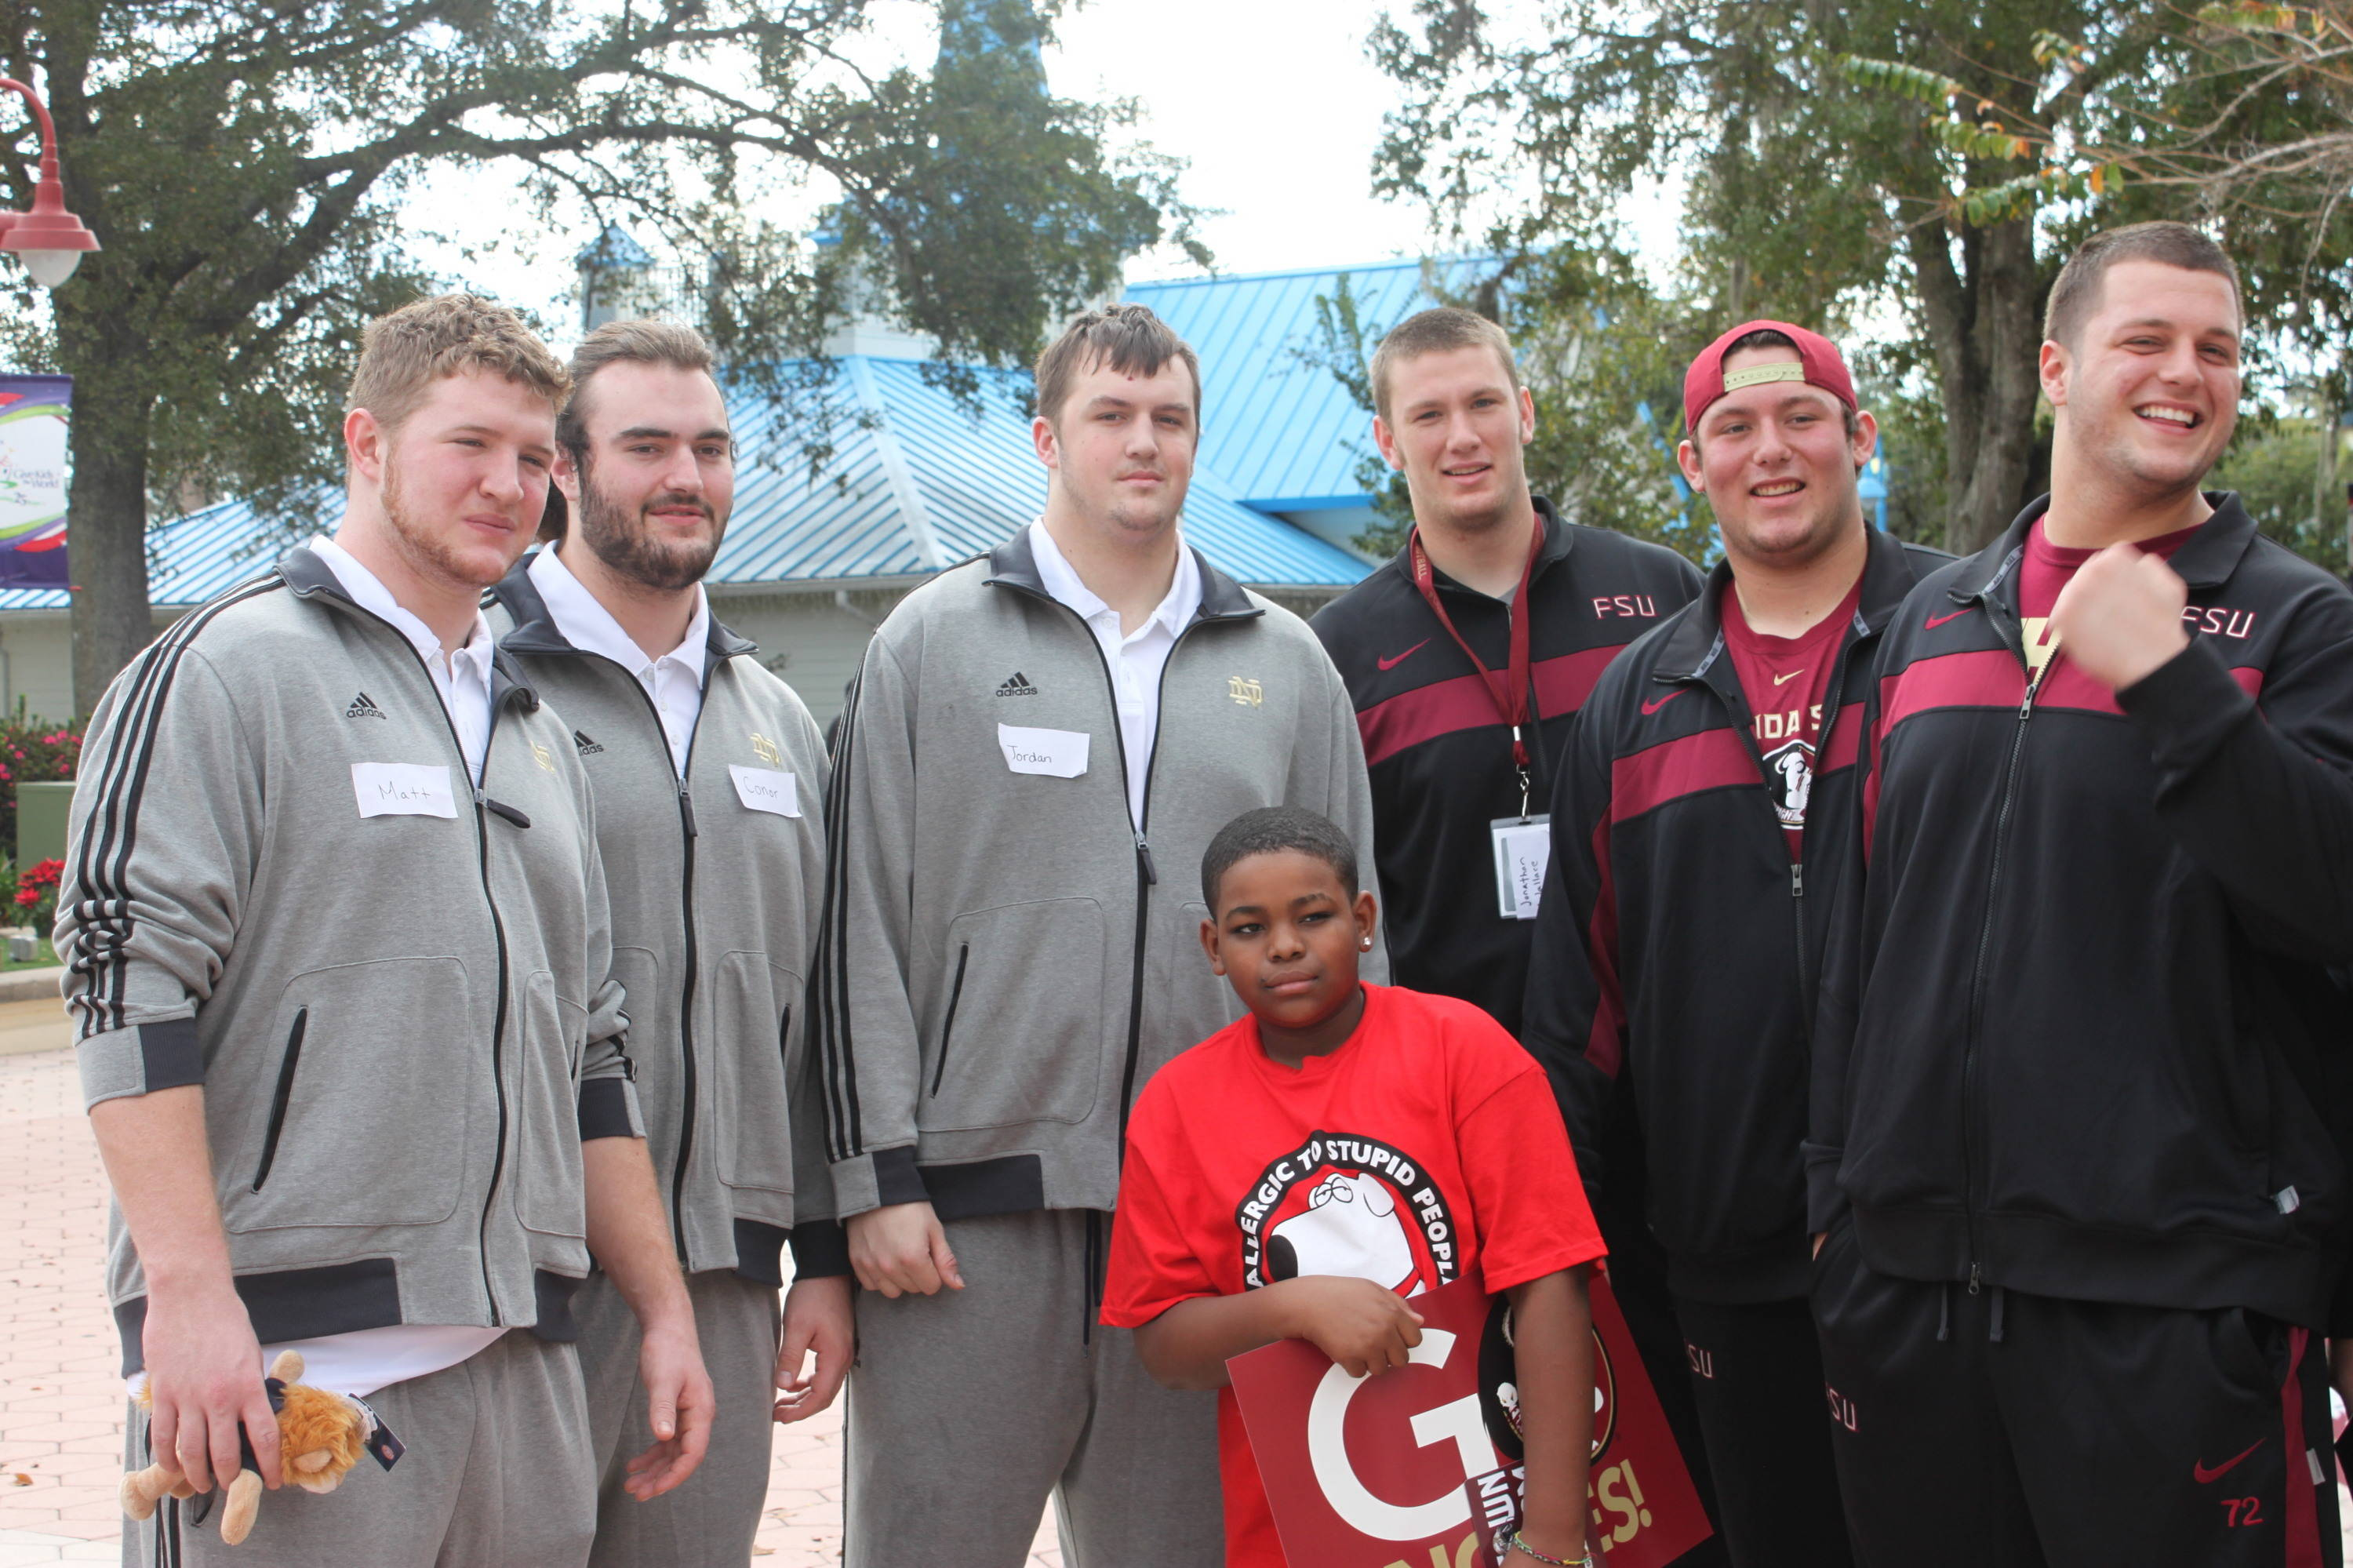 A group of Notre Dame players are joined by a group of 'Noles and a young man.